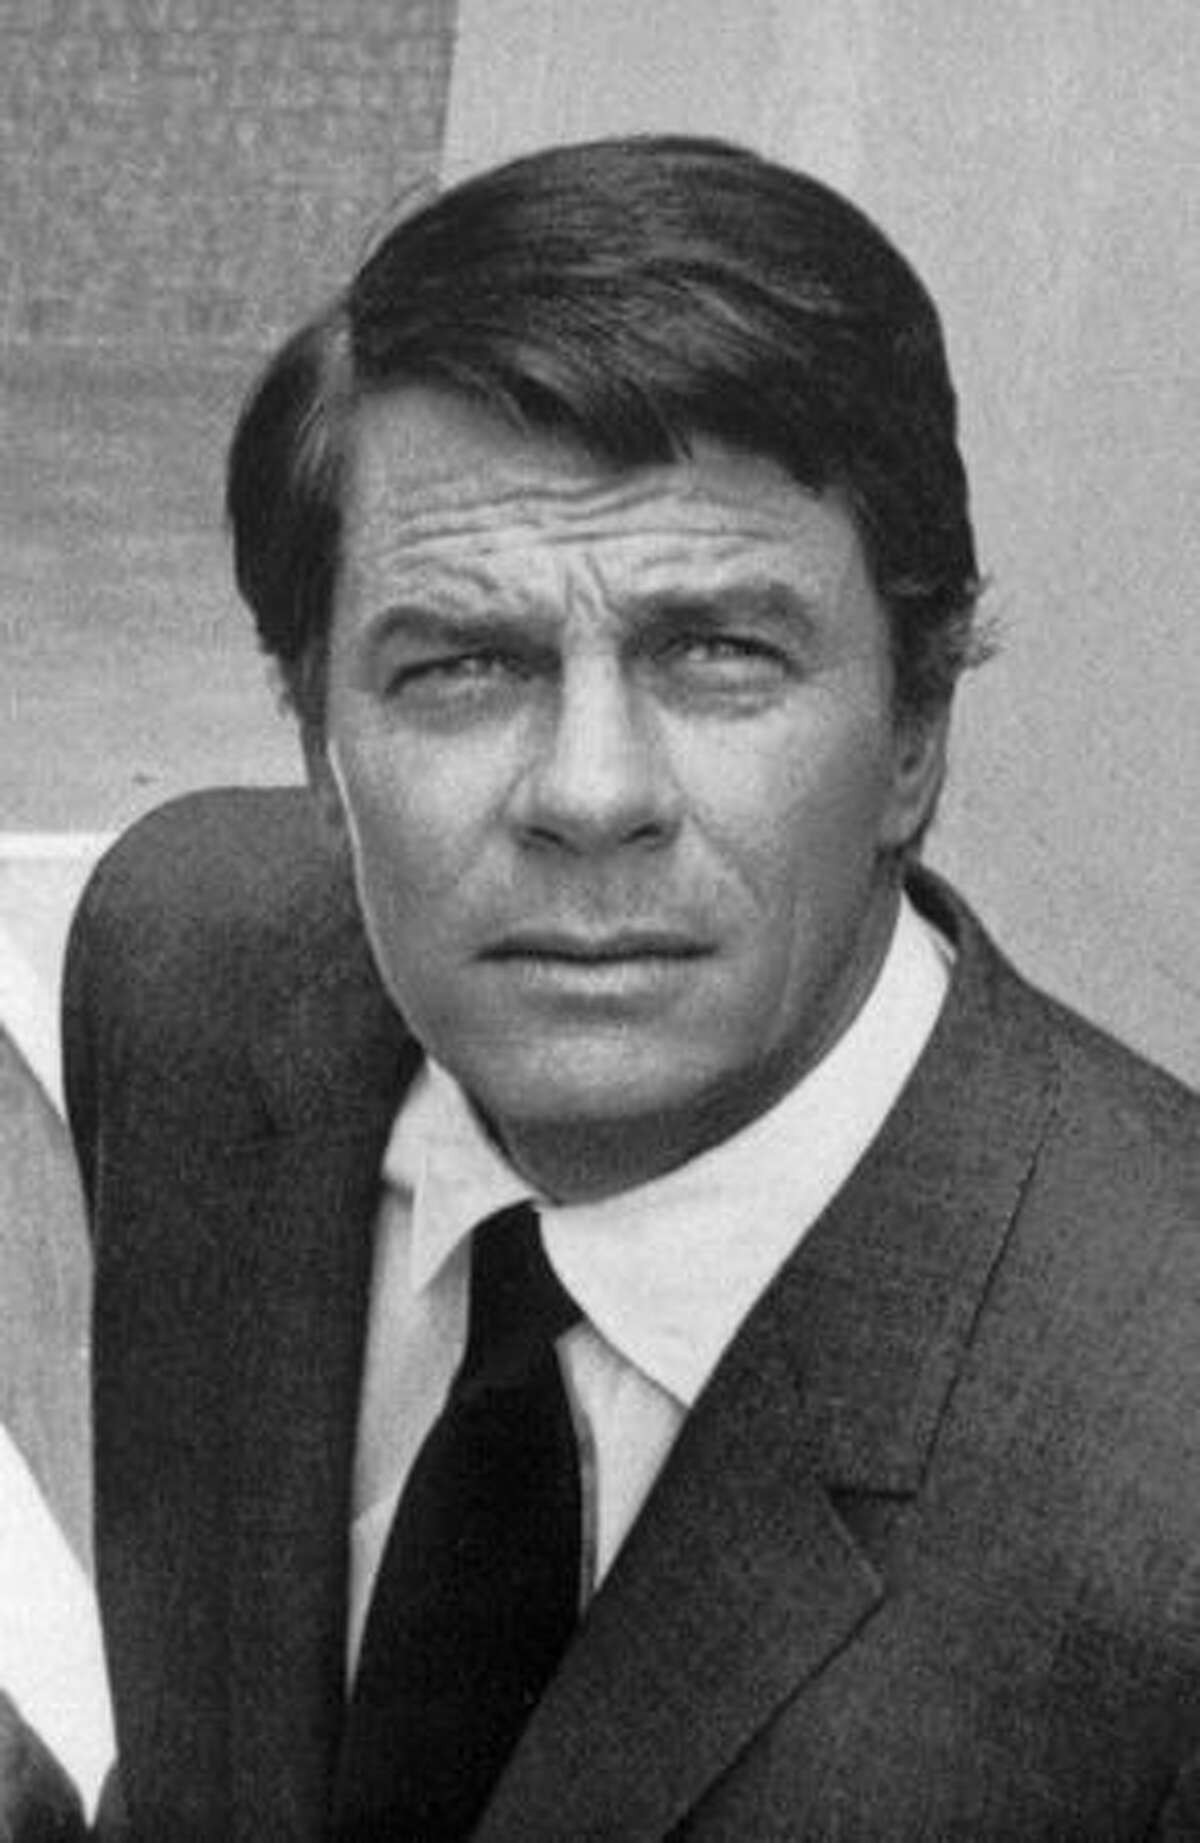 This 1969 file photo shows actor Peter Graves during shooting of the popular television show